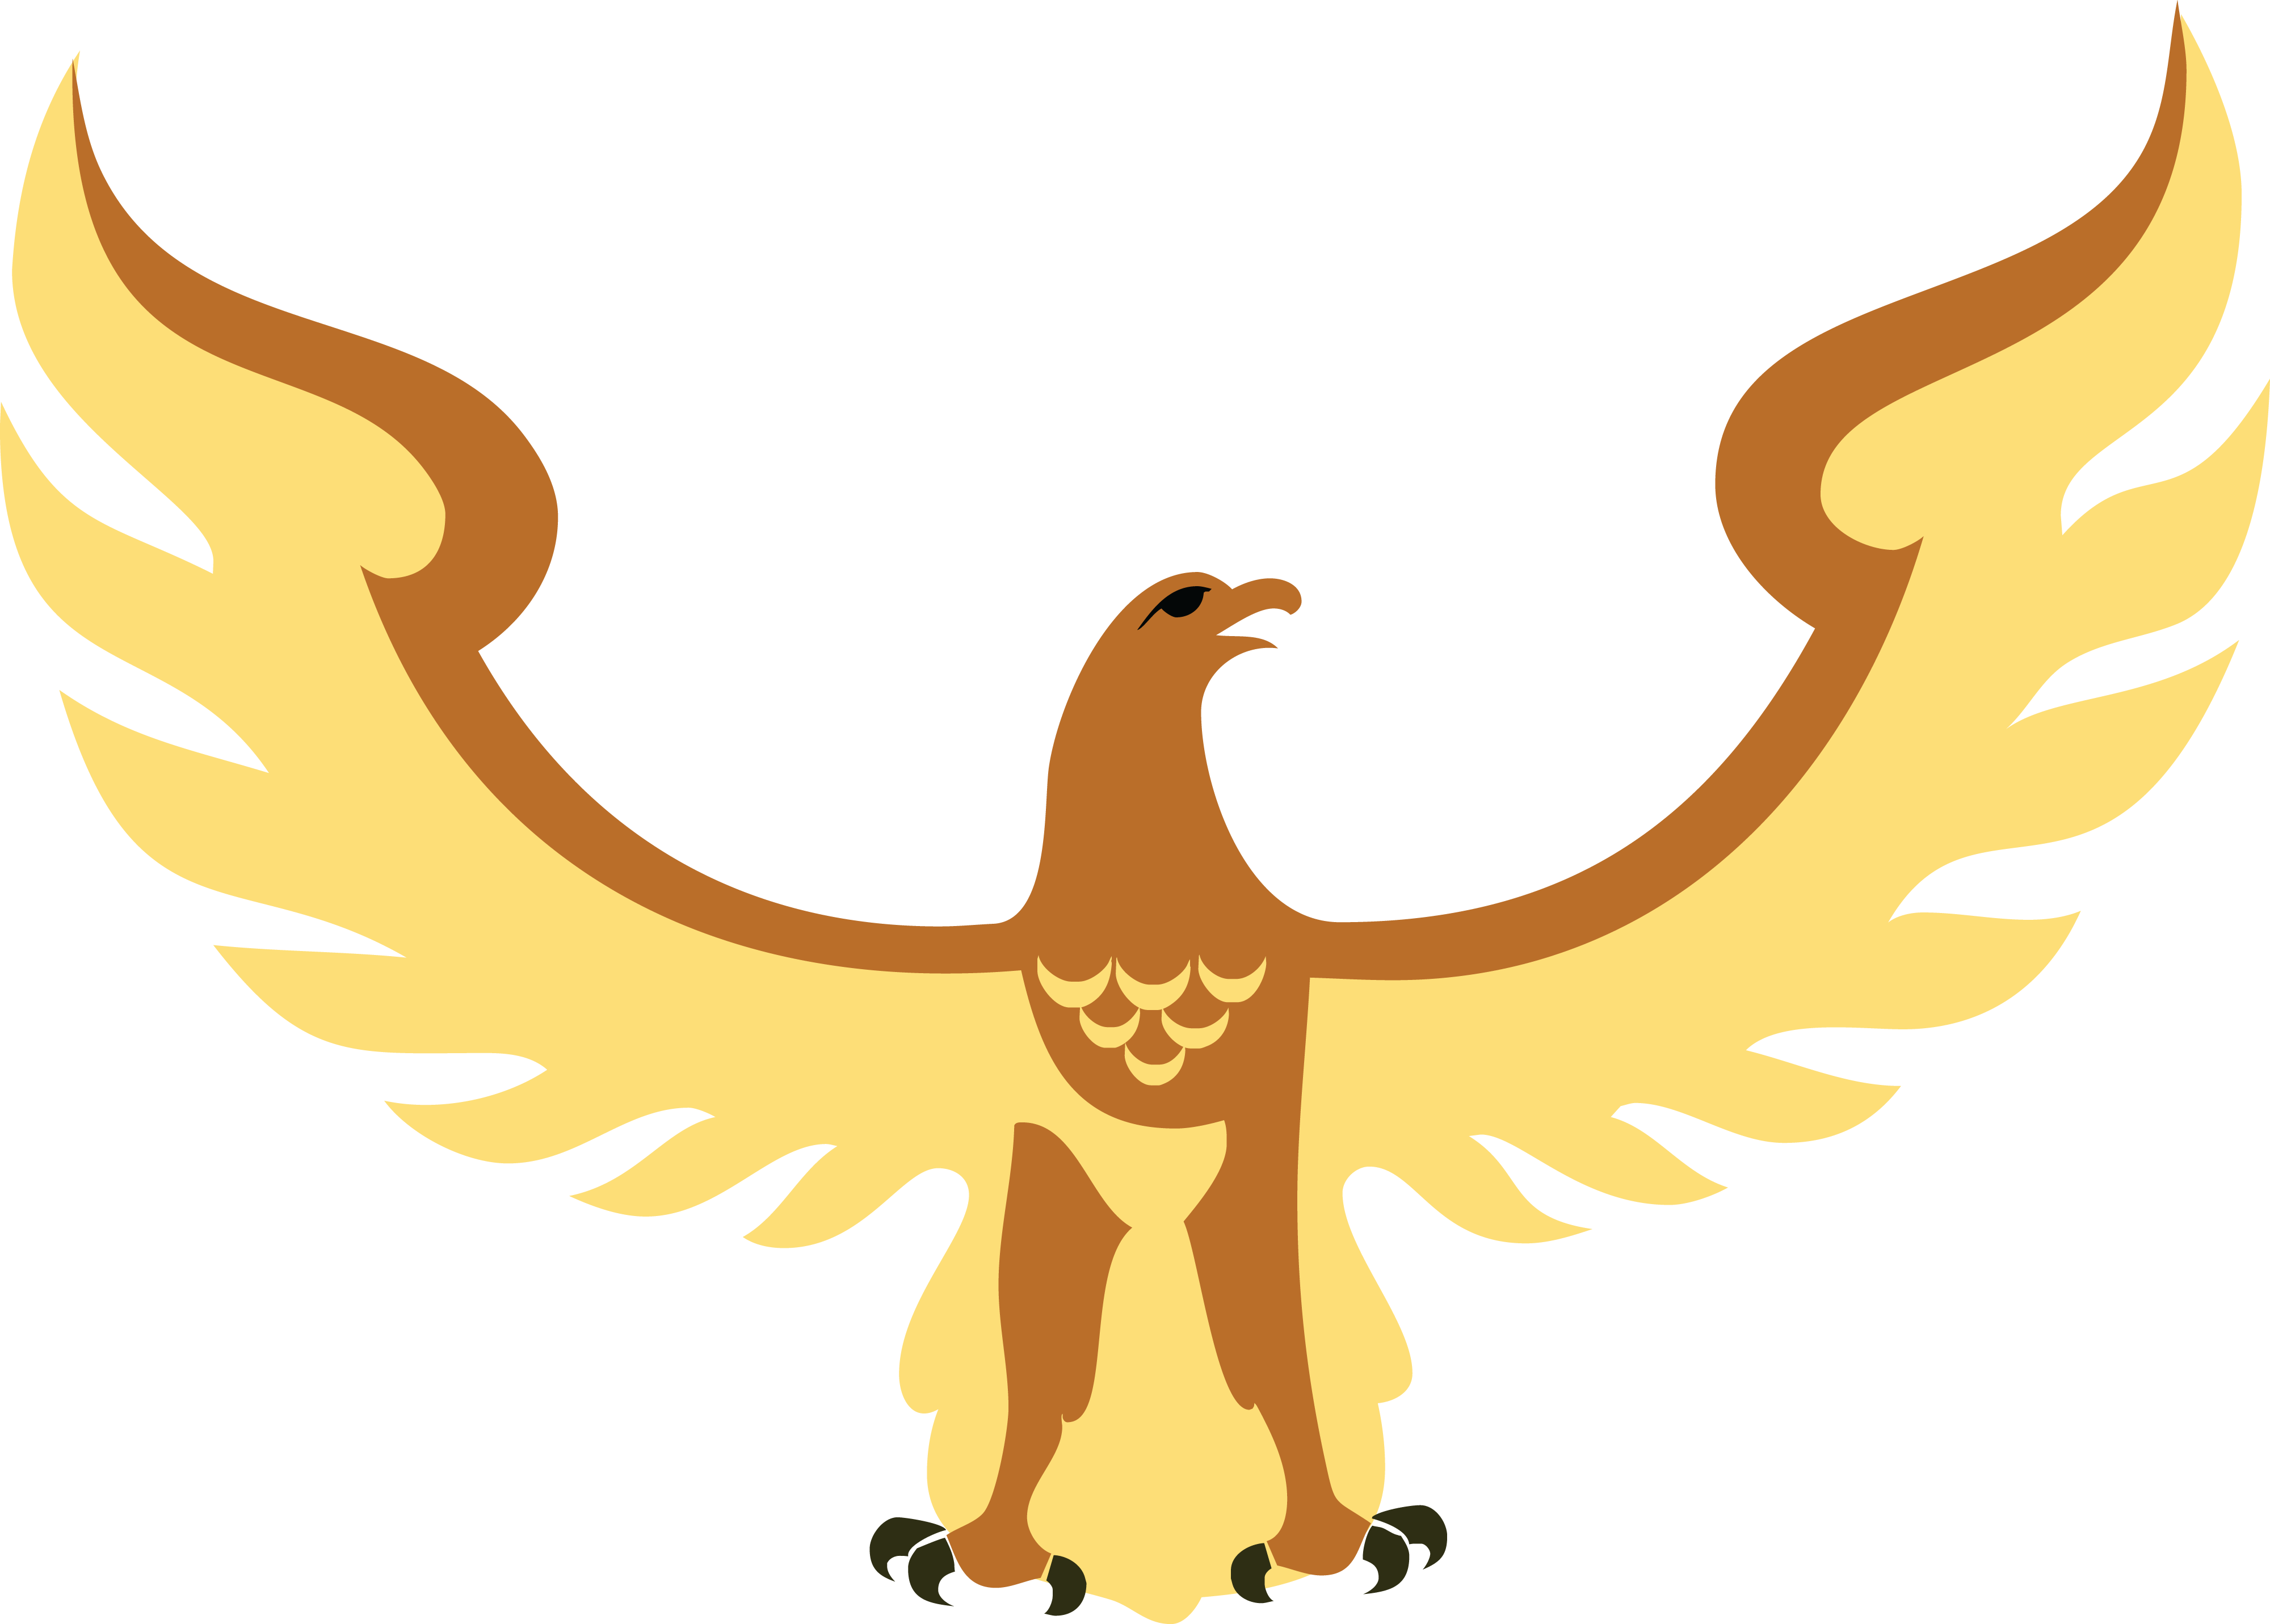 Free Clipart Of A flying hawk